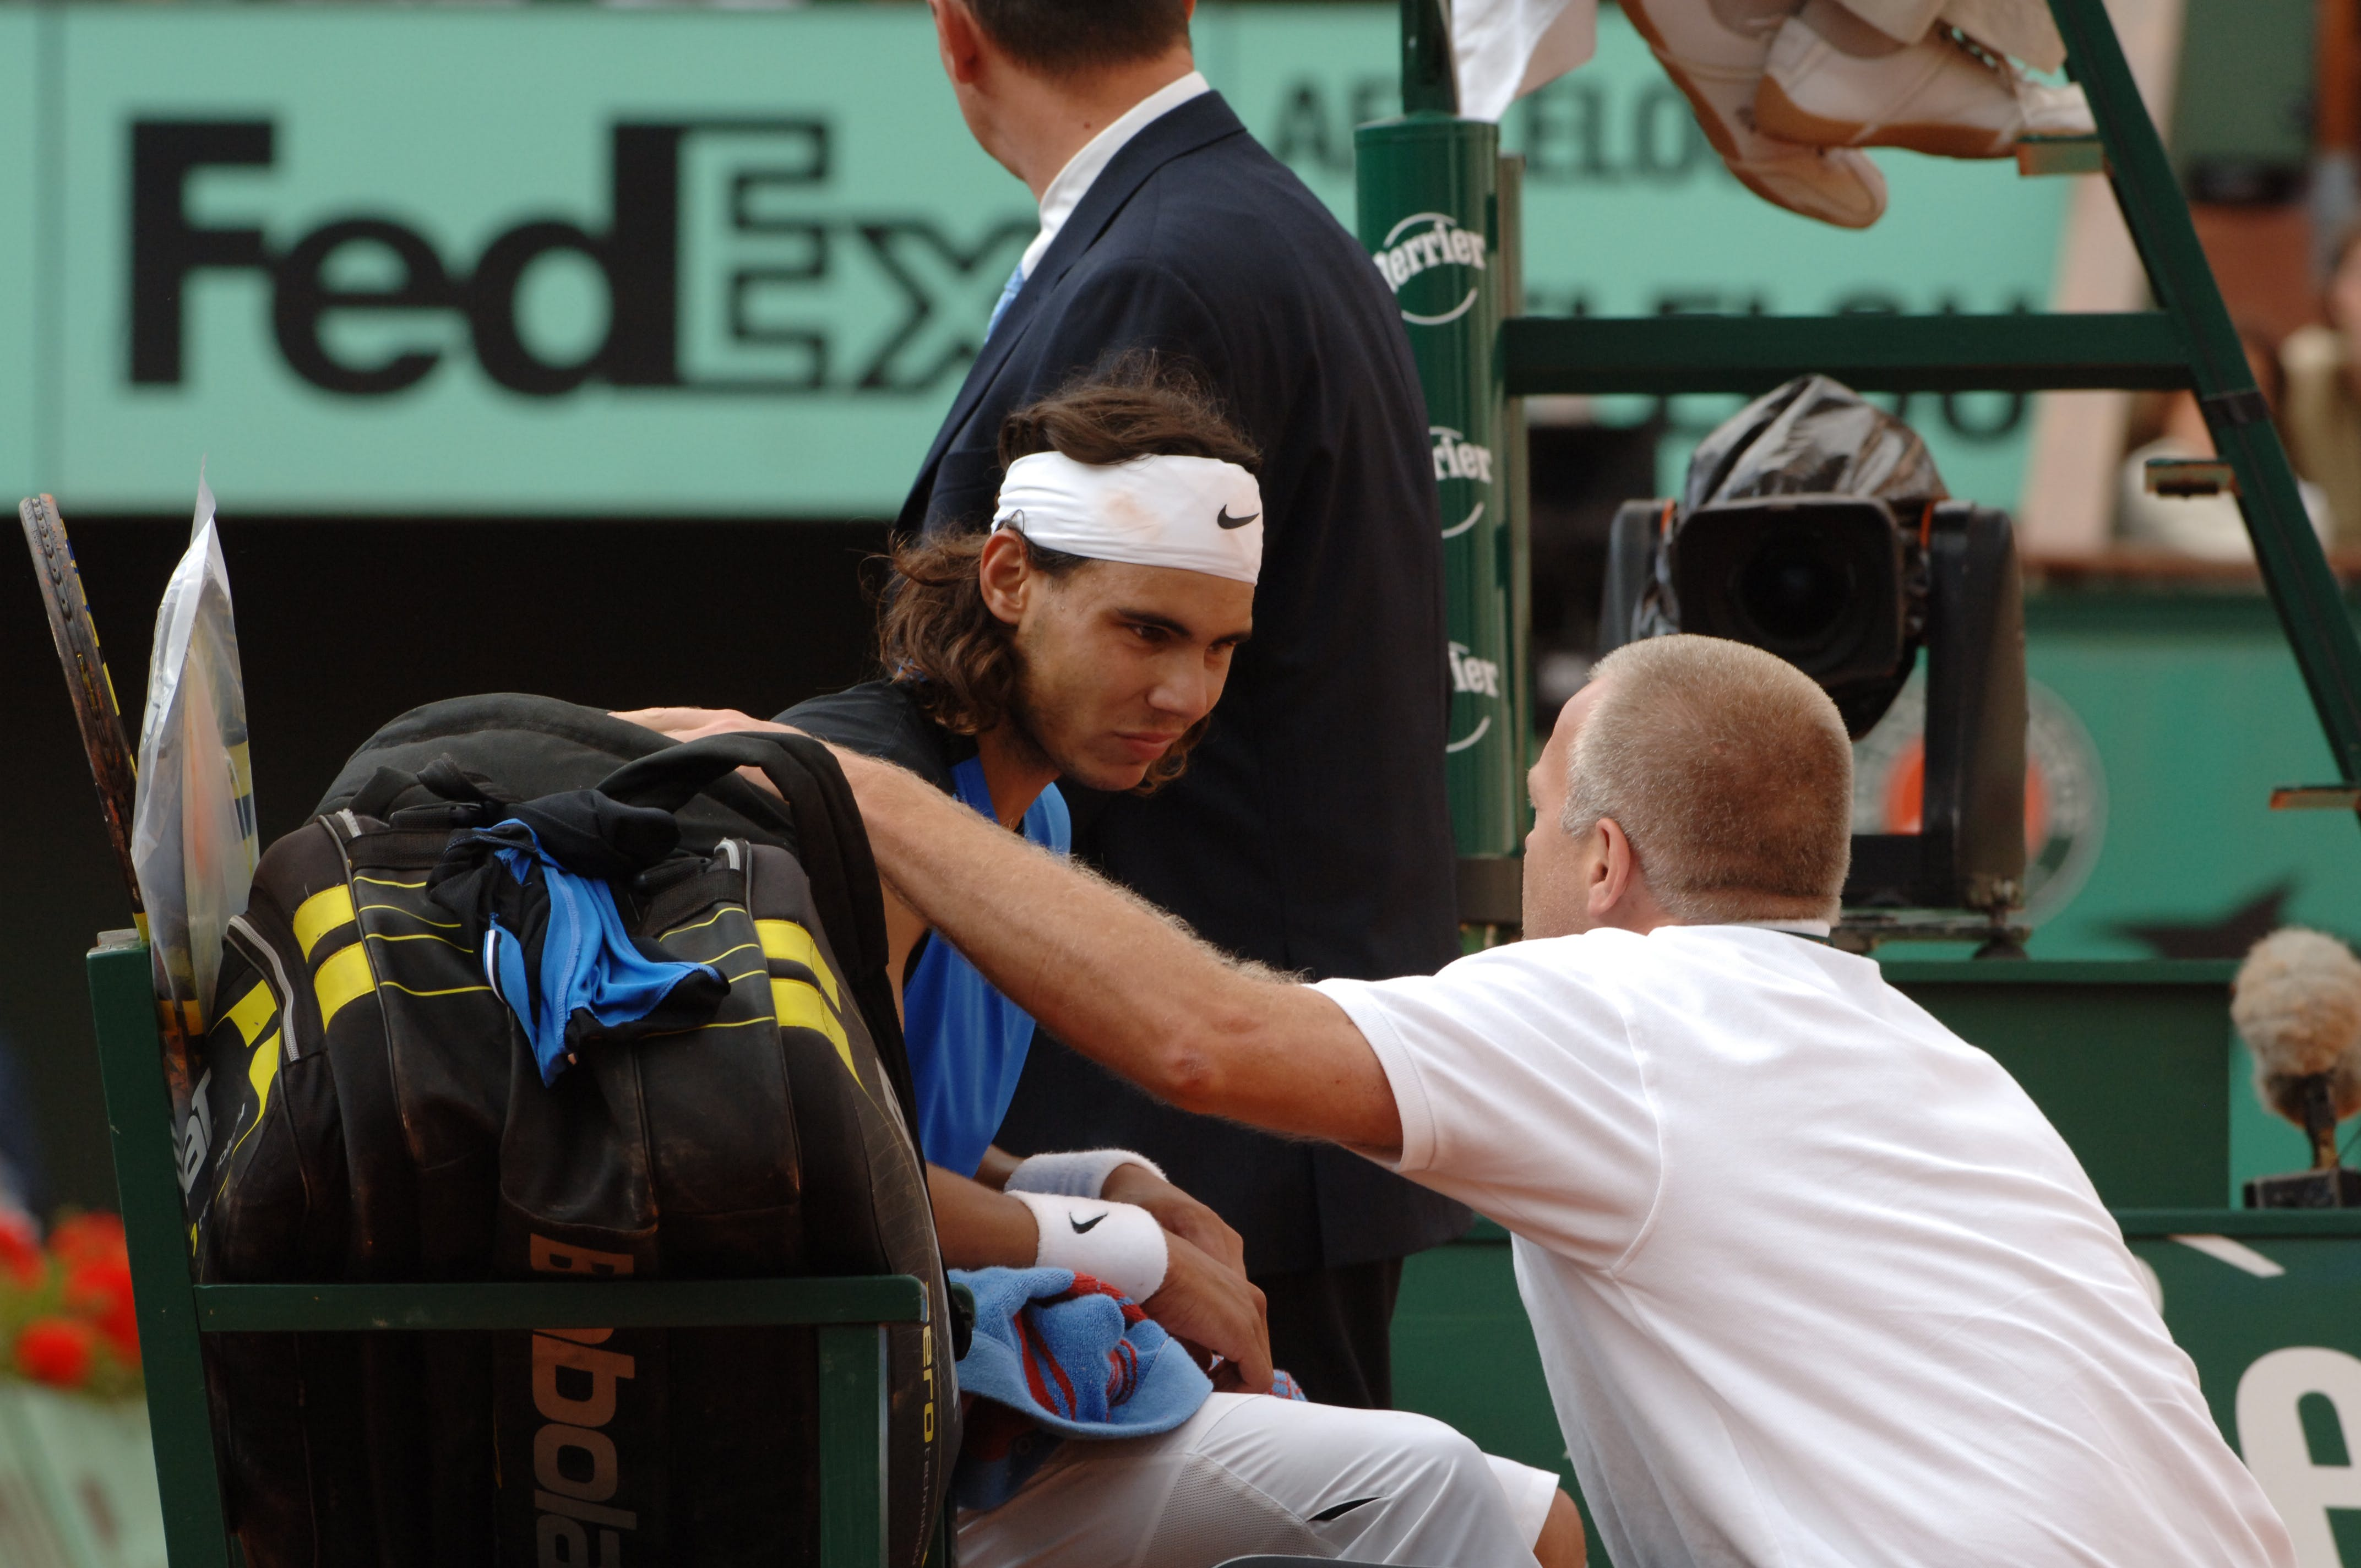 Rafael Nadal with the doctor during his match against Paul-Henri Mathieu